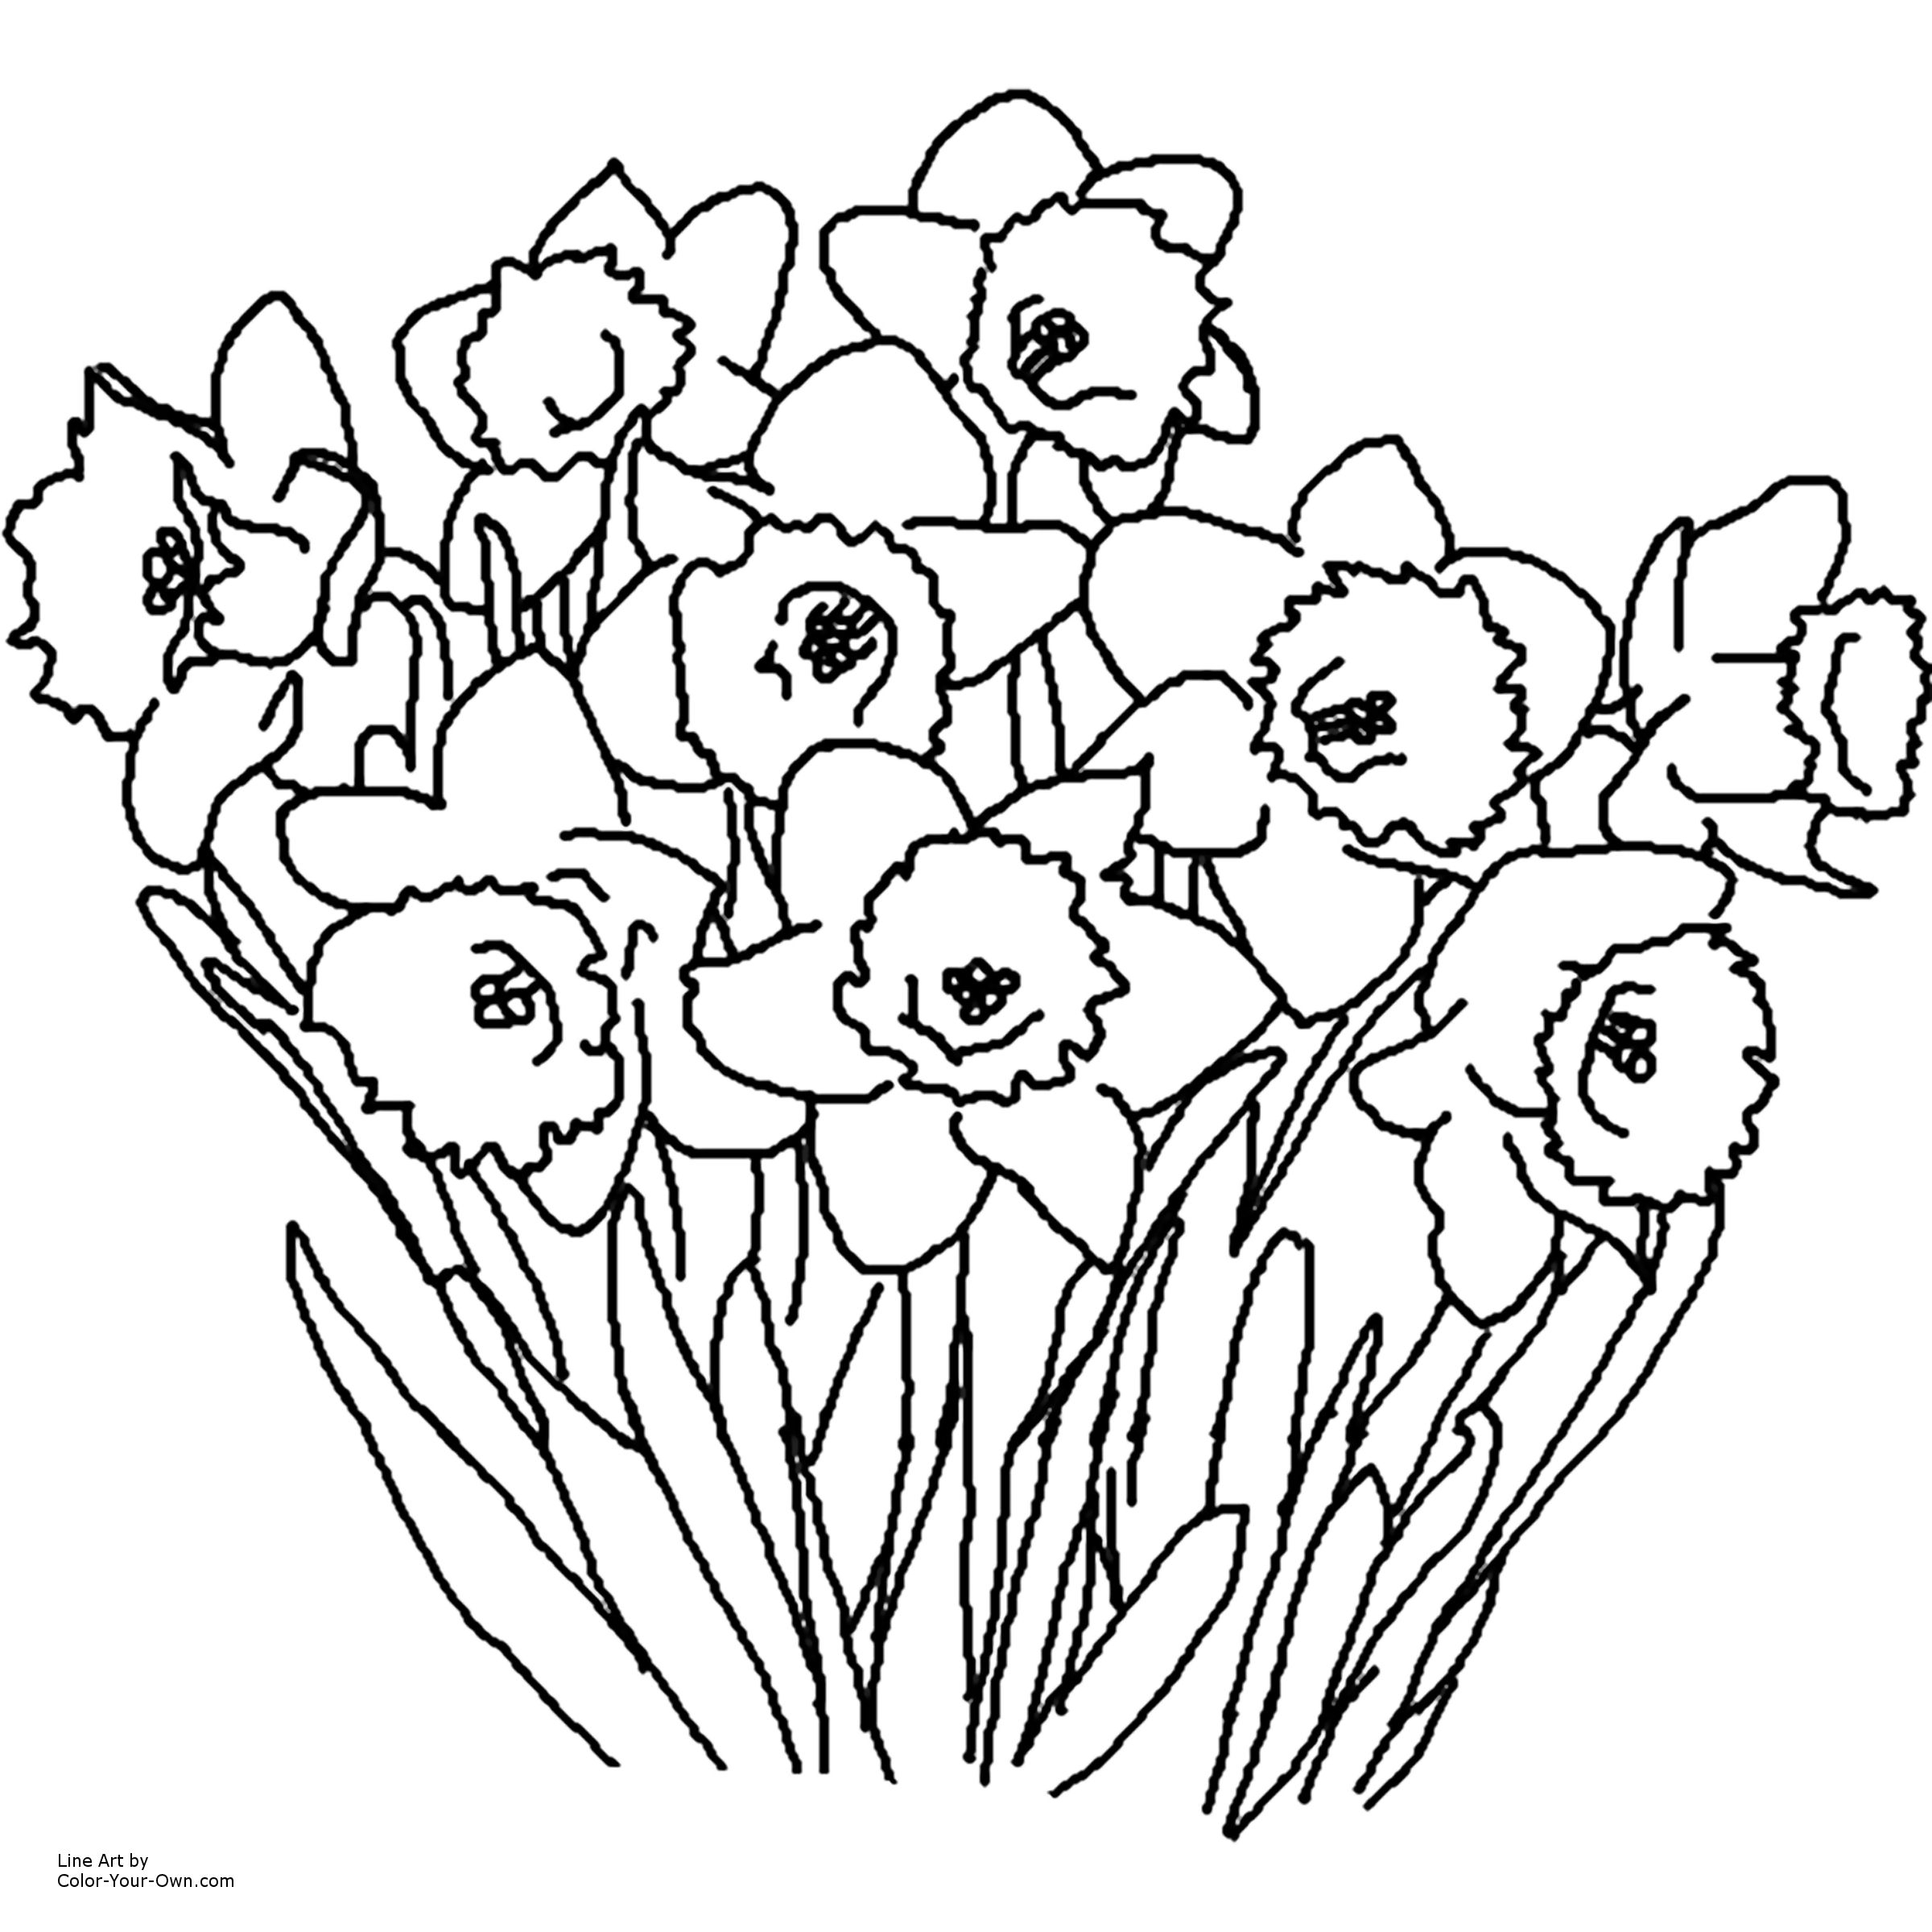 2400x2400 Surprising Printable Adult Coloring Pages Flowers With Free